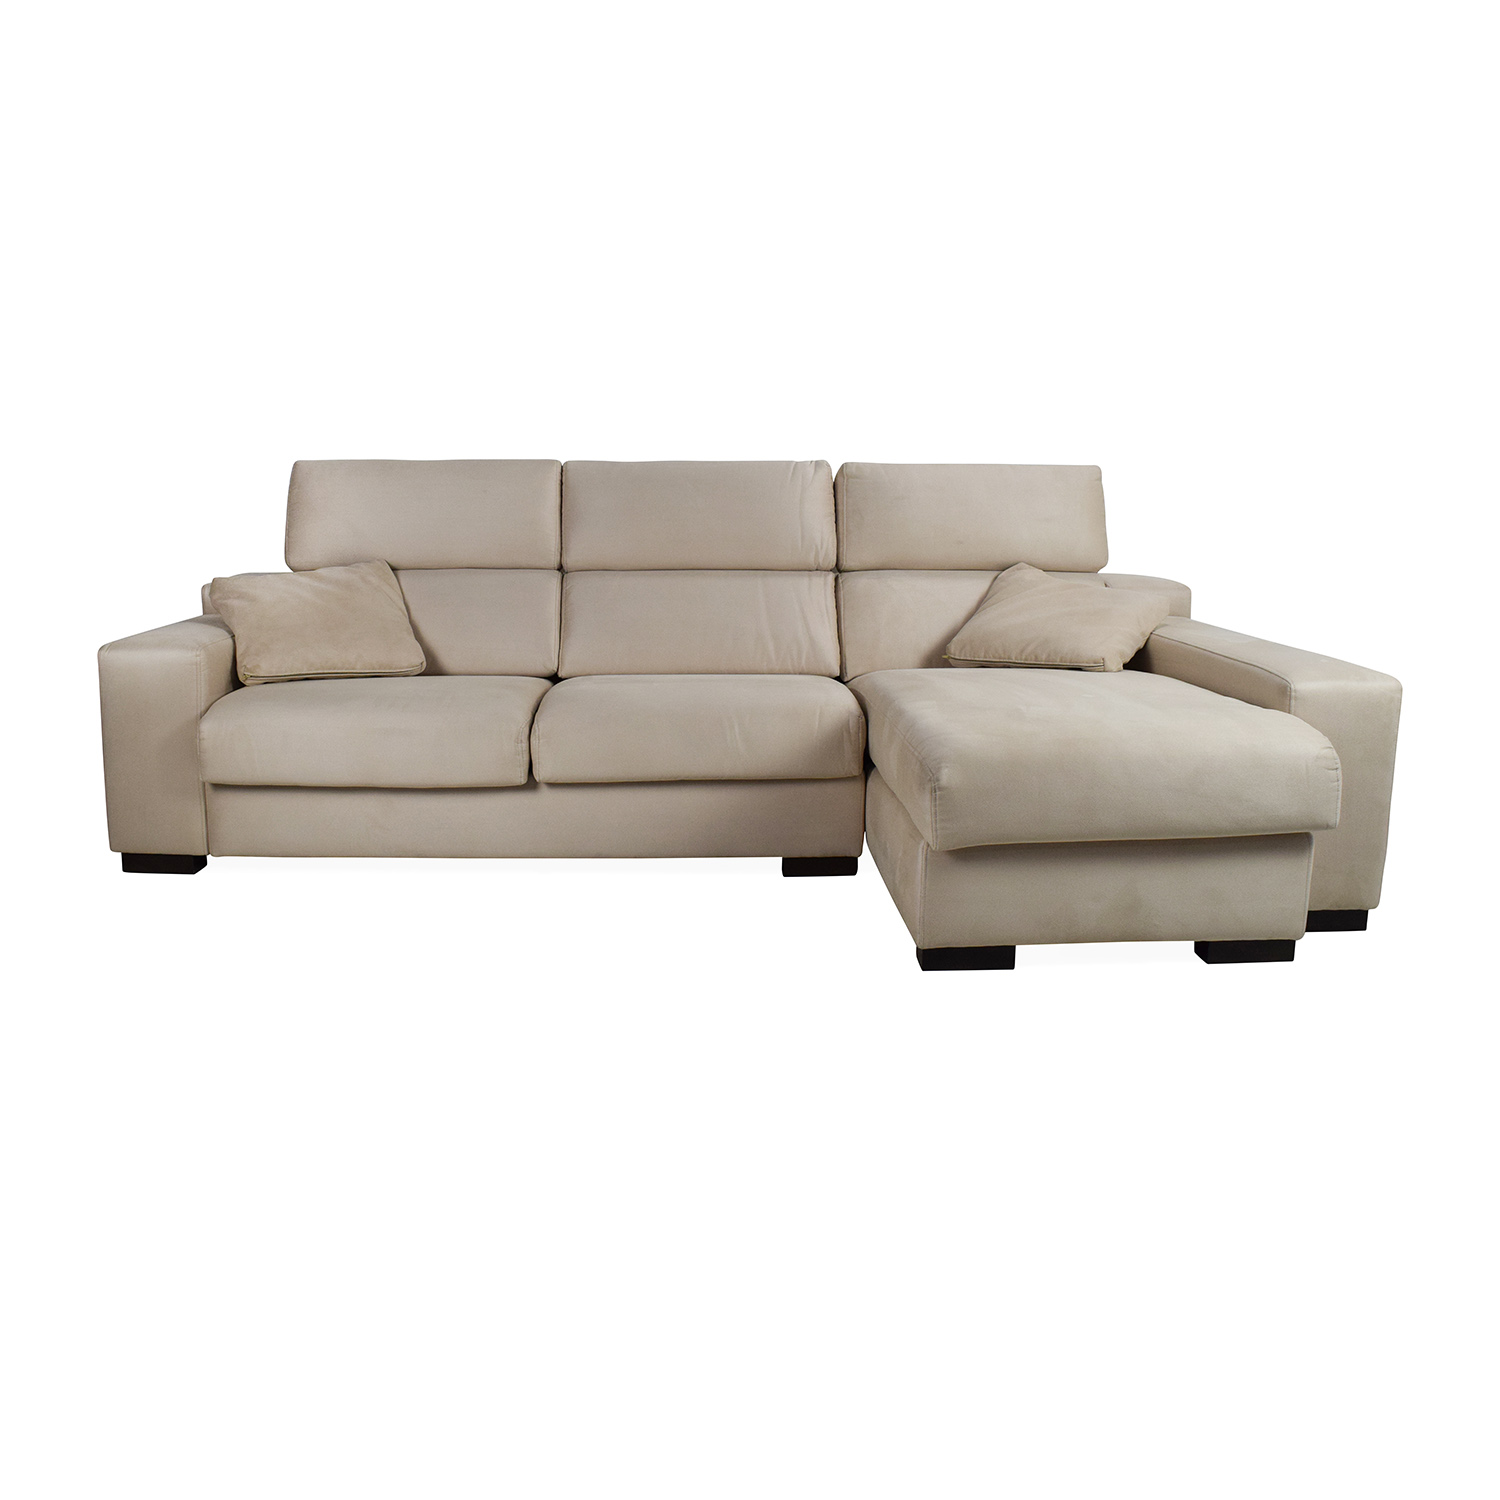 Fama Fama Lotus Sofa With Chaise nj